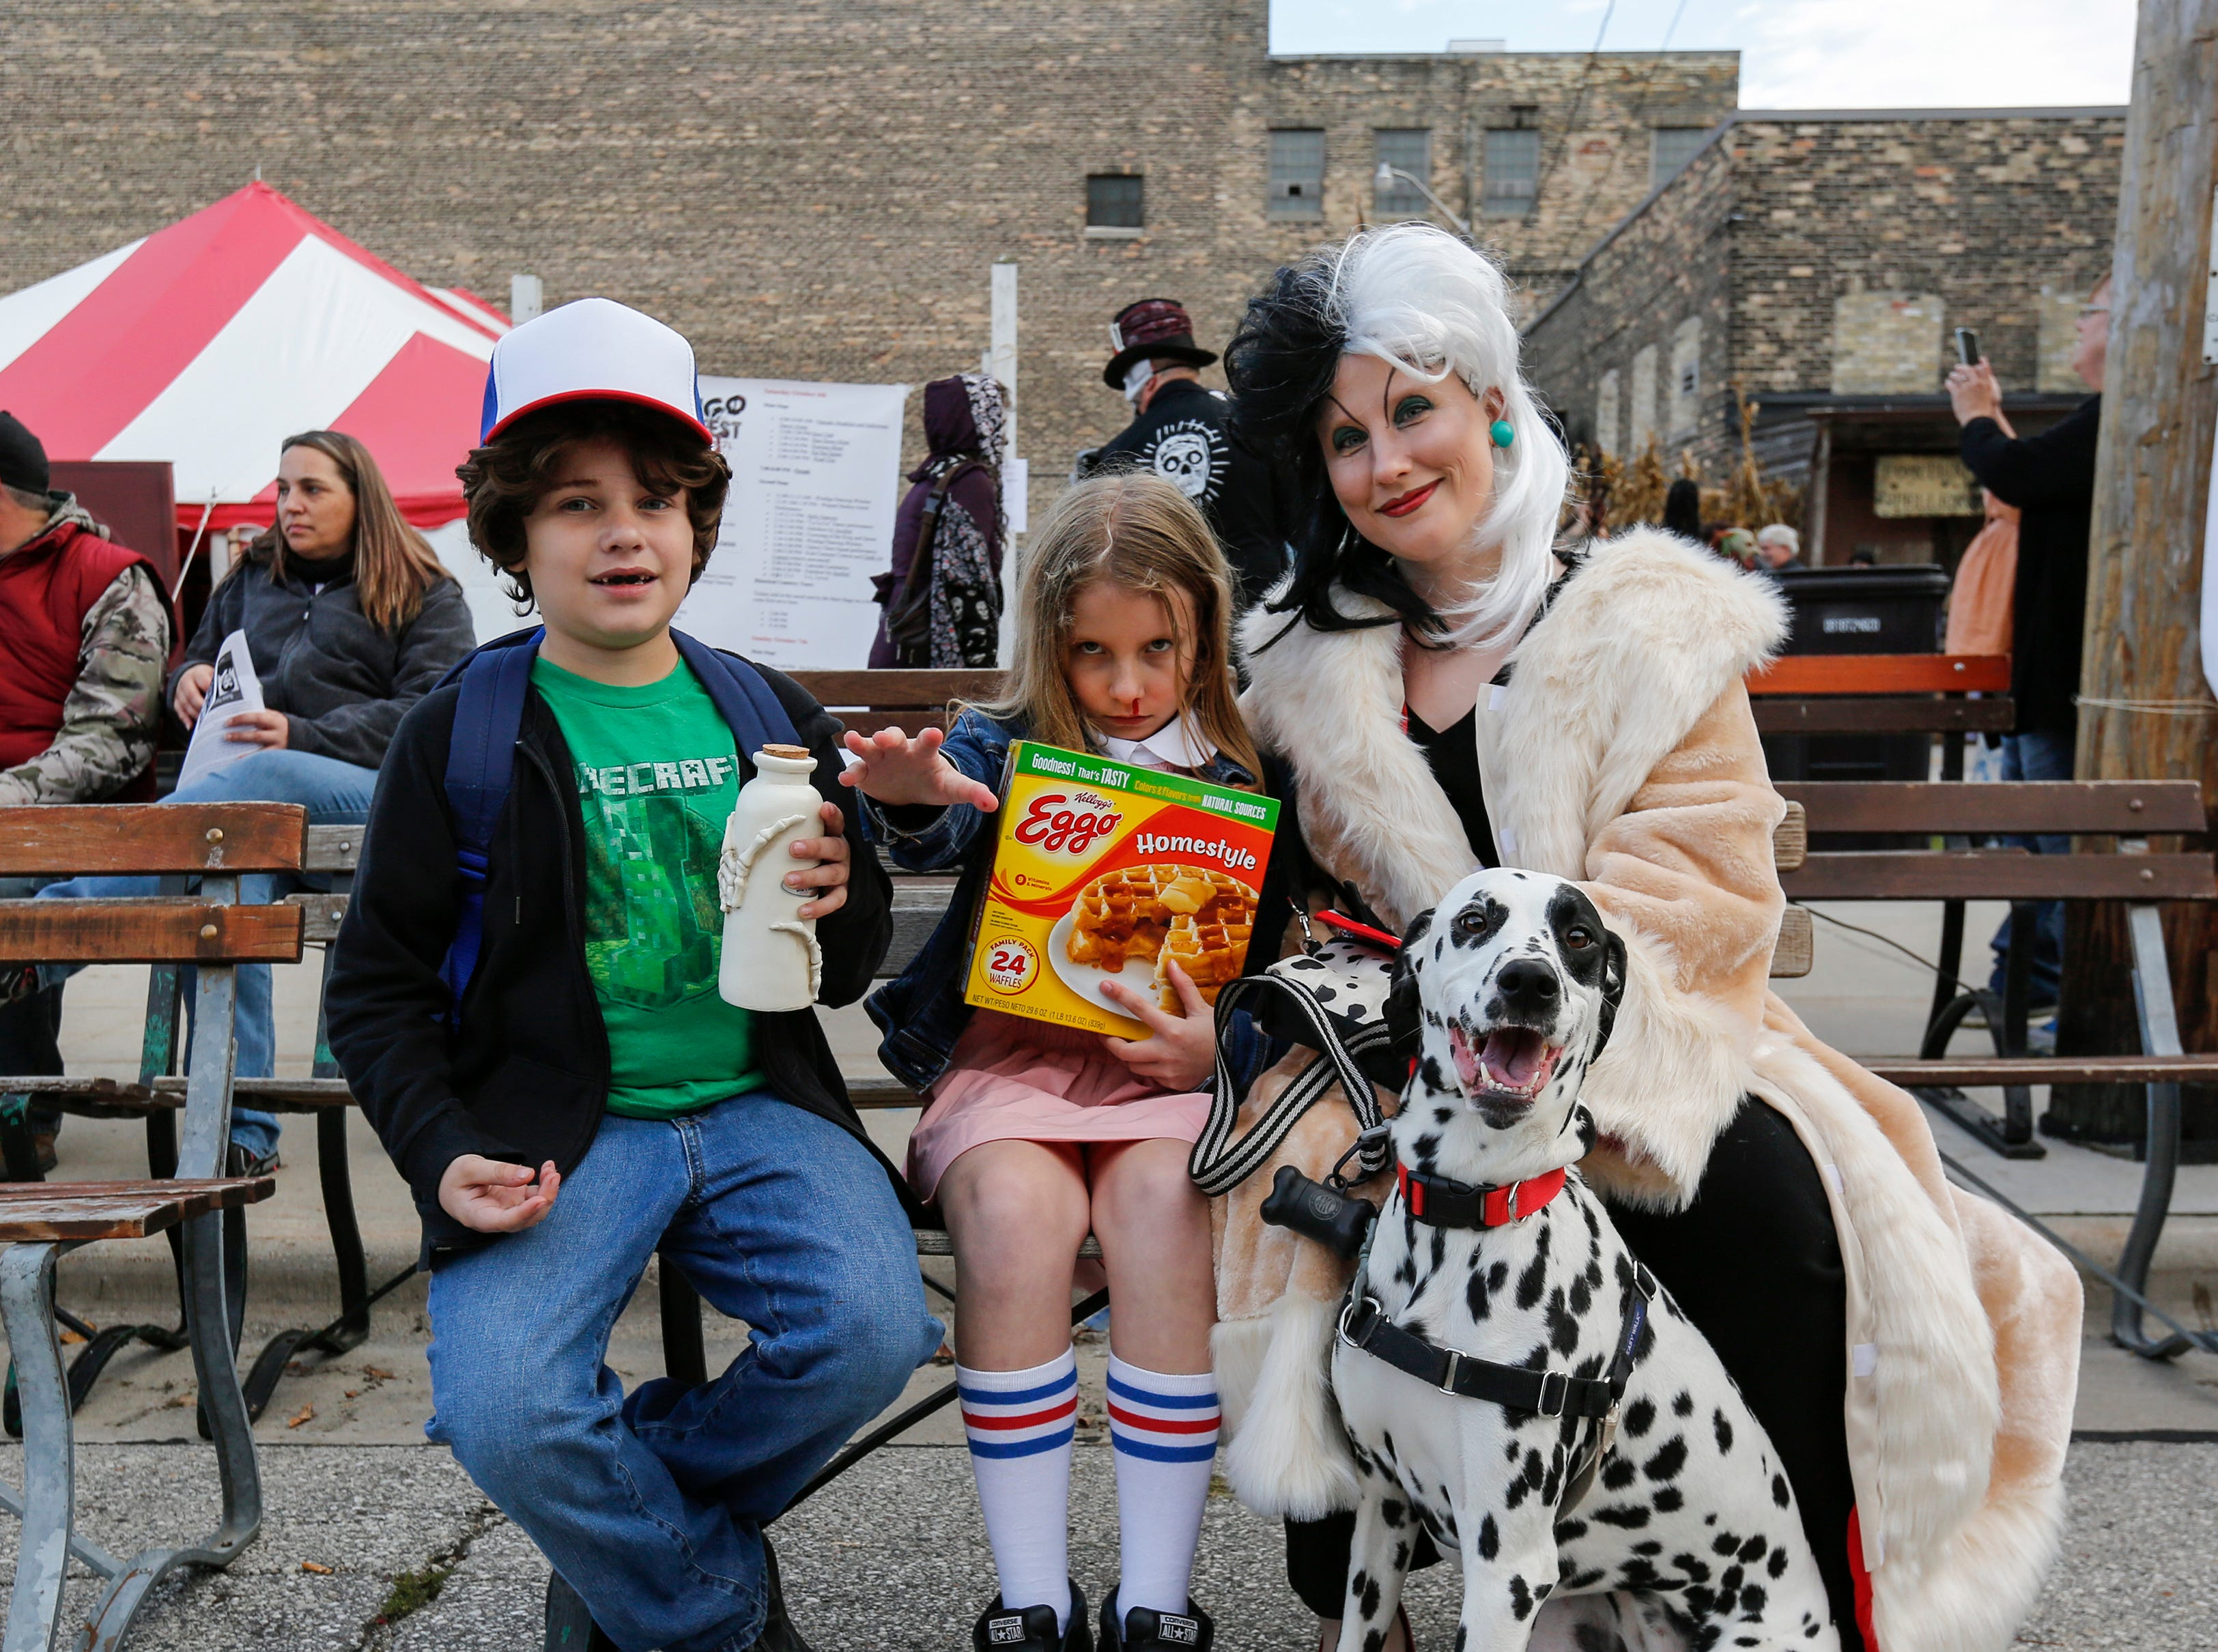 Jillian, 11, and Jakob, 8, pose with their mom Sara Hoffmann in costume during Windigo Fest on Saturday, Oct. 6, 2018, in Manitowoc, Wis.